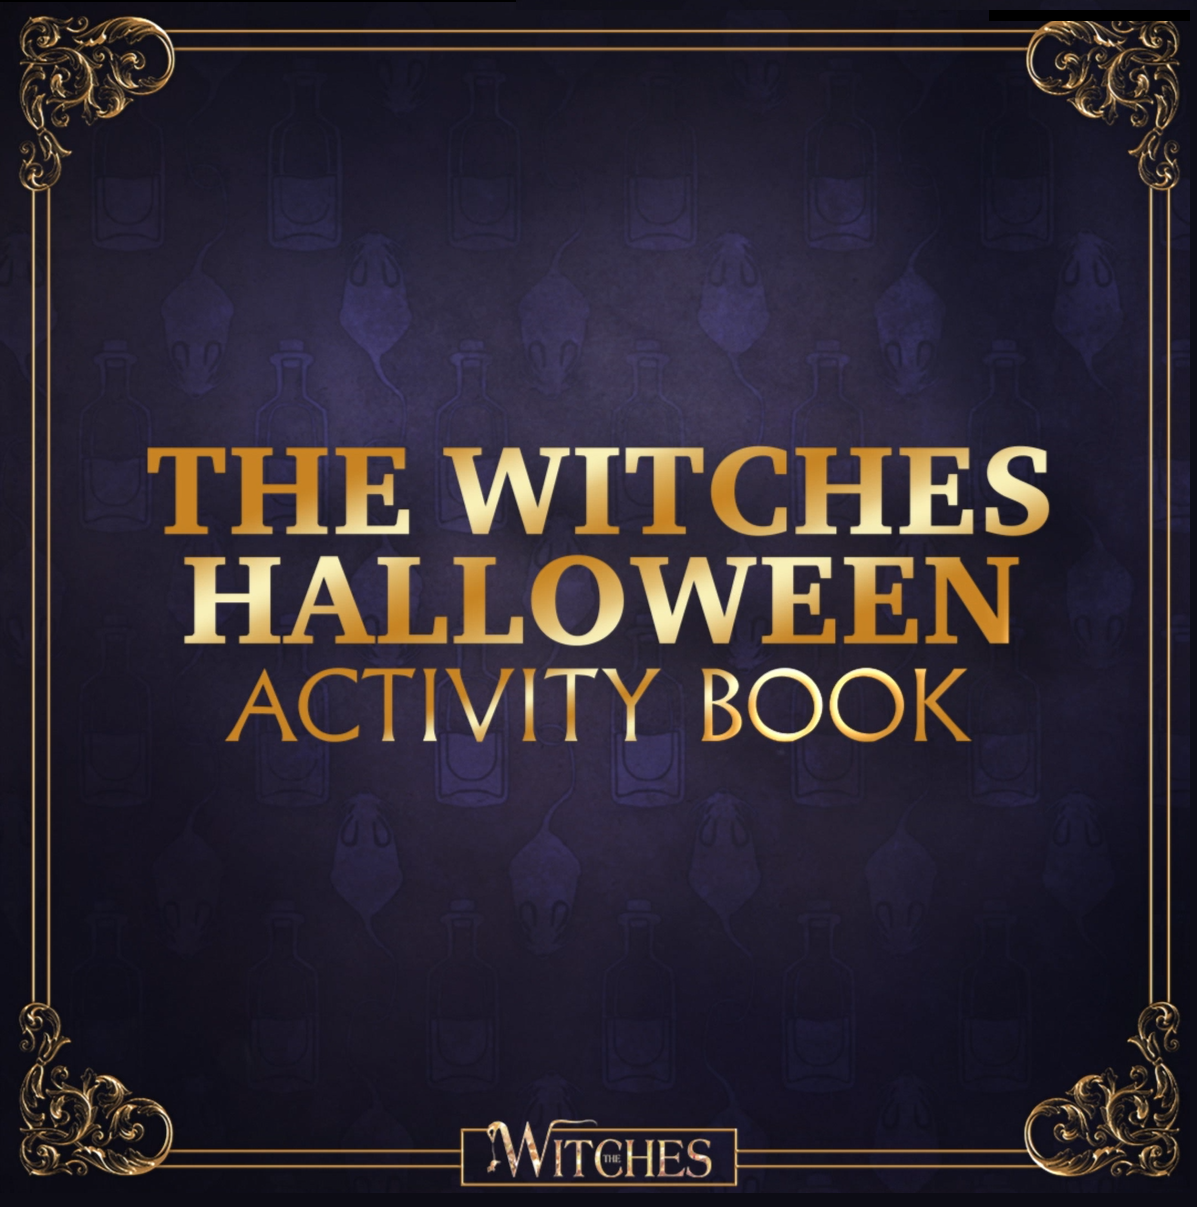 Halloween isn't Cancelled! Watch Roald Dahl's The Witches on HBO Max! #TheWitchesMovie #TheWitchesHBOMax